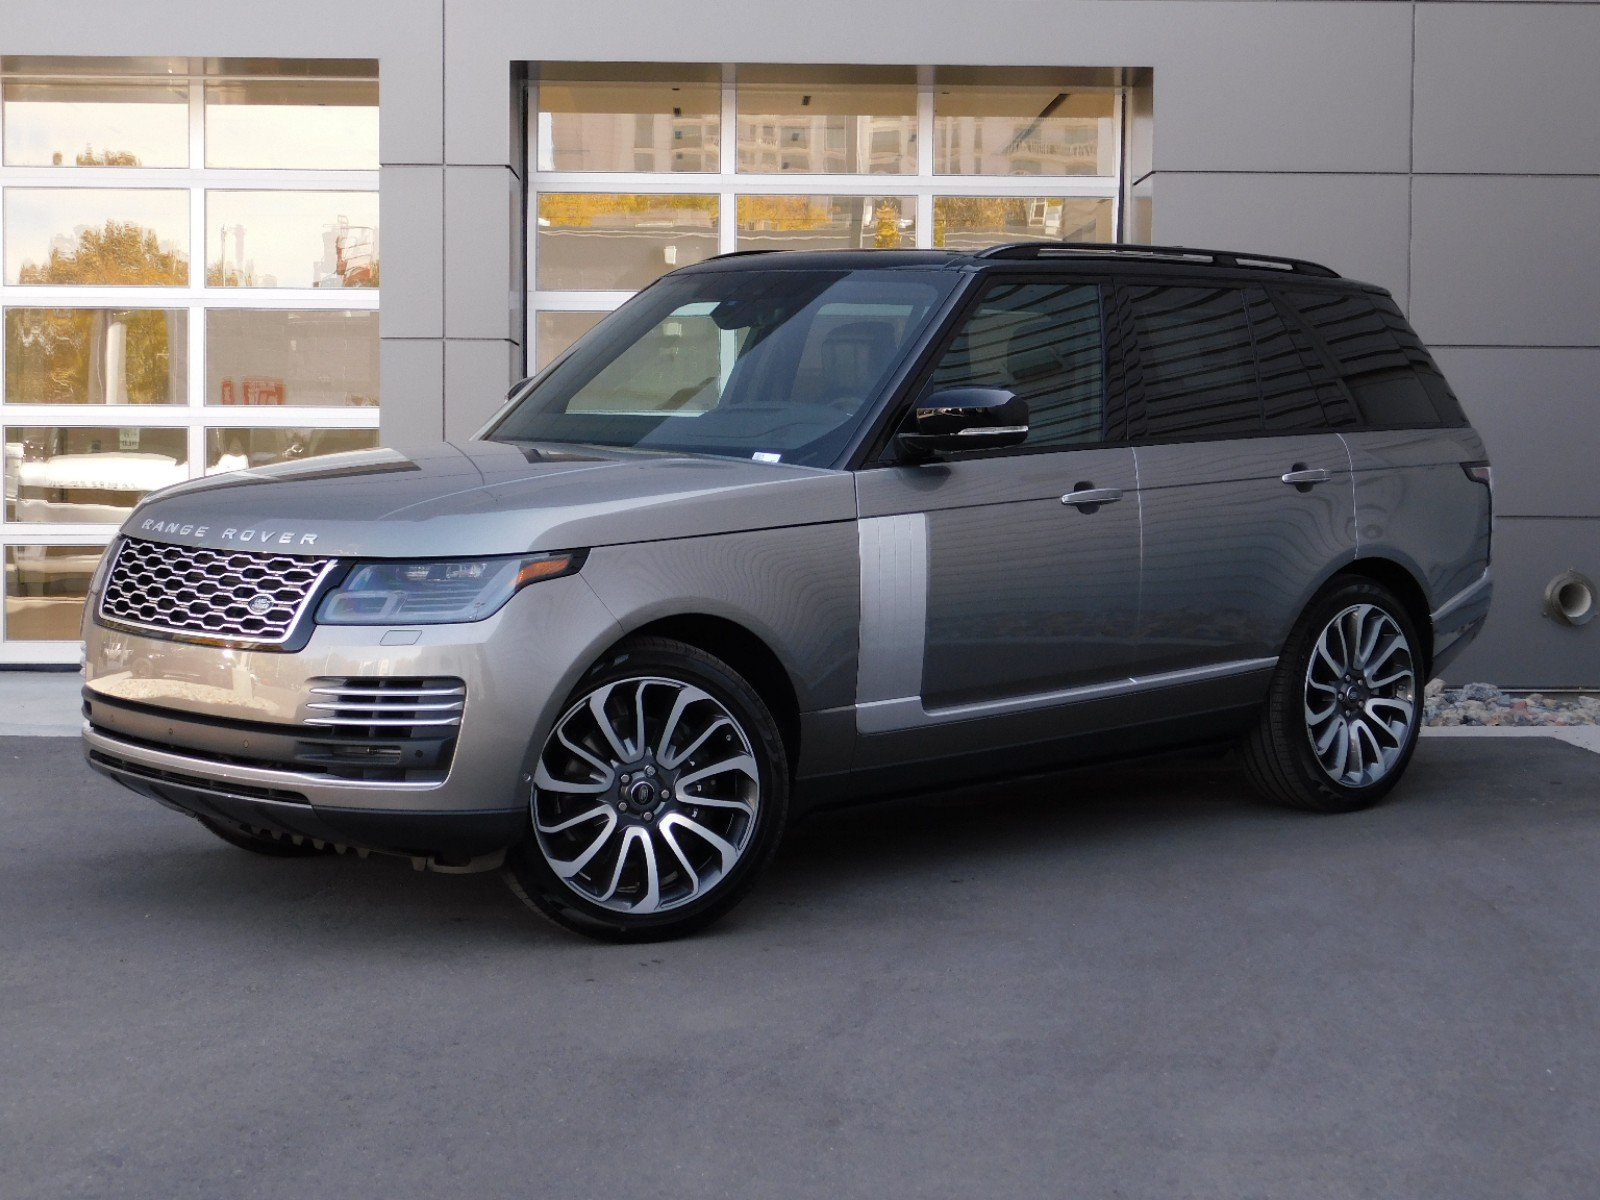 What is the Difference Between Land Rover and Range Rover Unique New 2020 Land Rover Range Rover Autobiography Swb with Navigation & 4wd